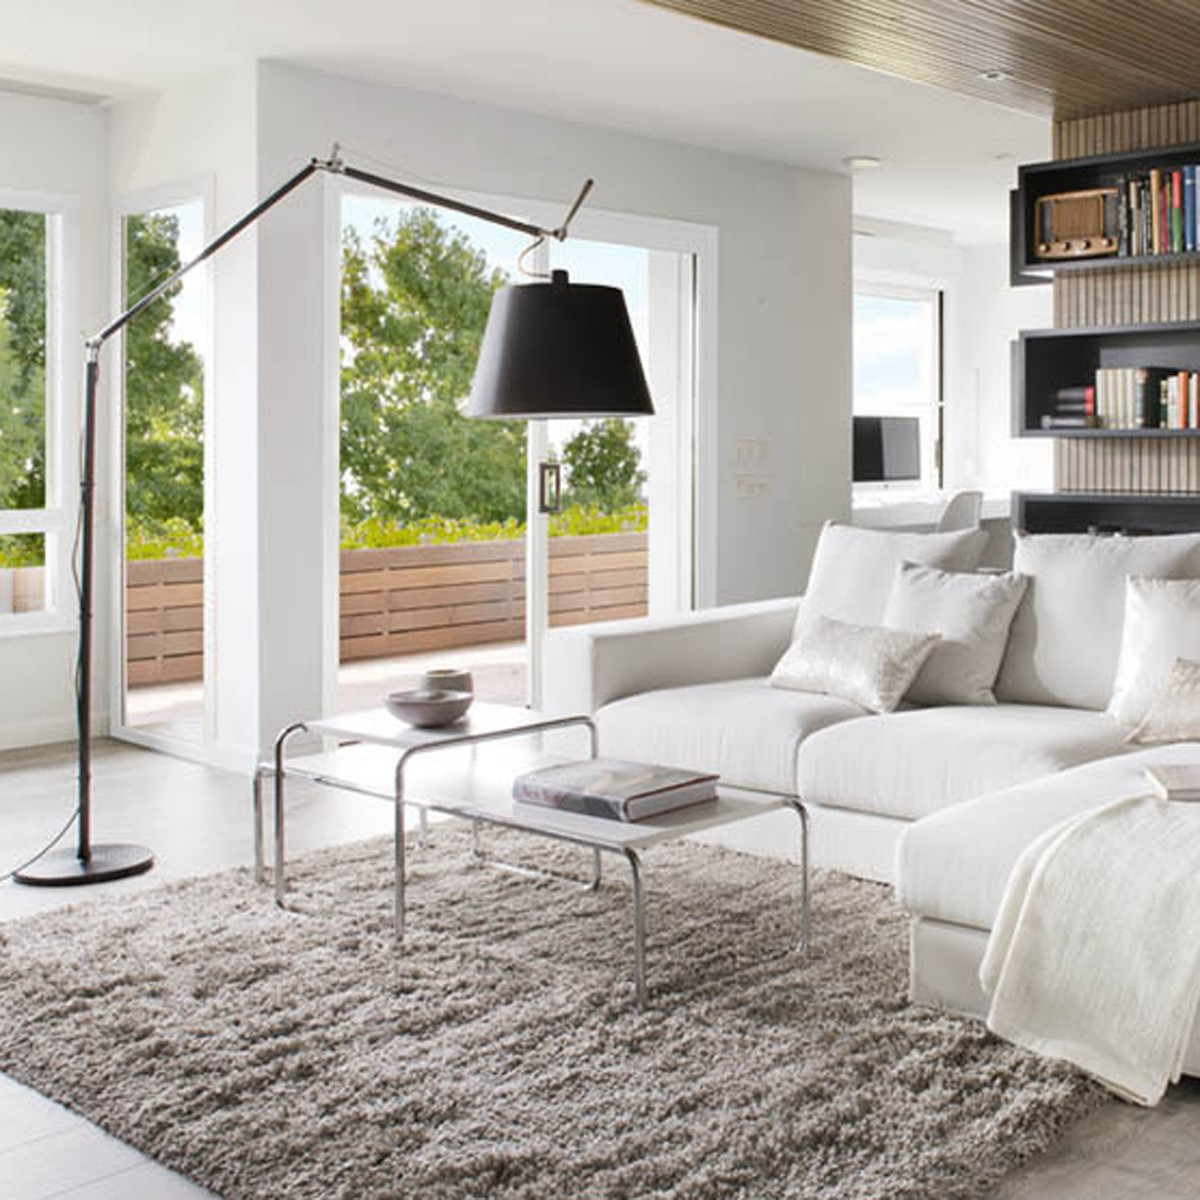 artemide tolomeo mega terra led mit schnurdimmer. Black Bedroom Furniture Sets. Home Design Ideas